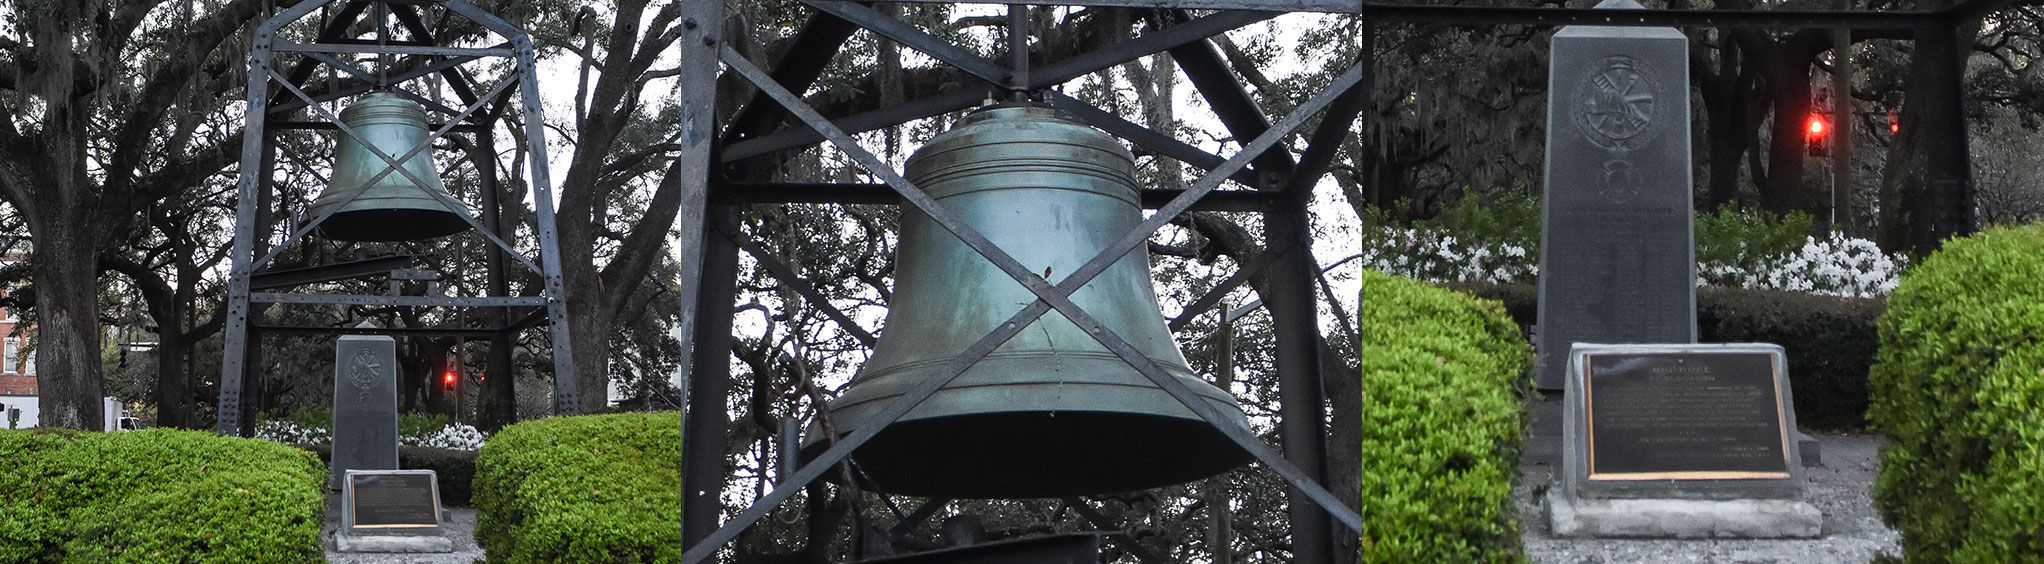 Big Duke Alarm Bell